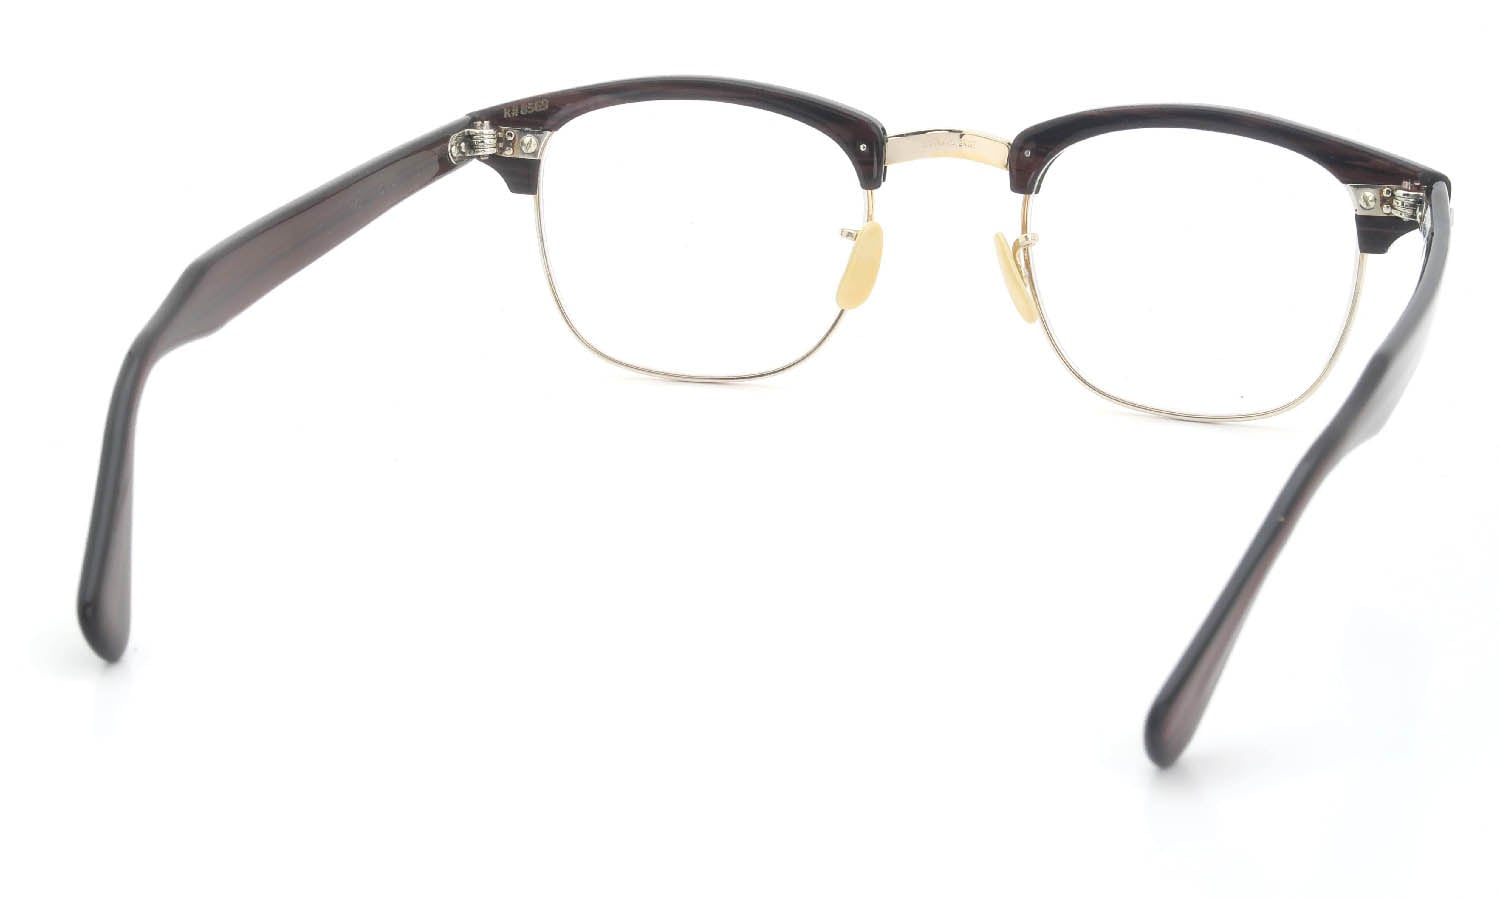 American Optical 1950s〜1960s SIRMONT RS-YG 46-22 #8569